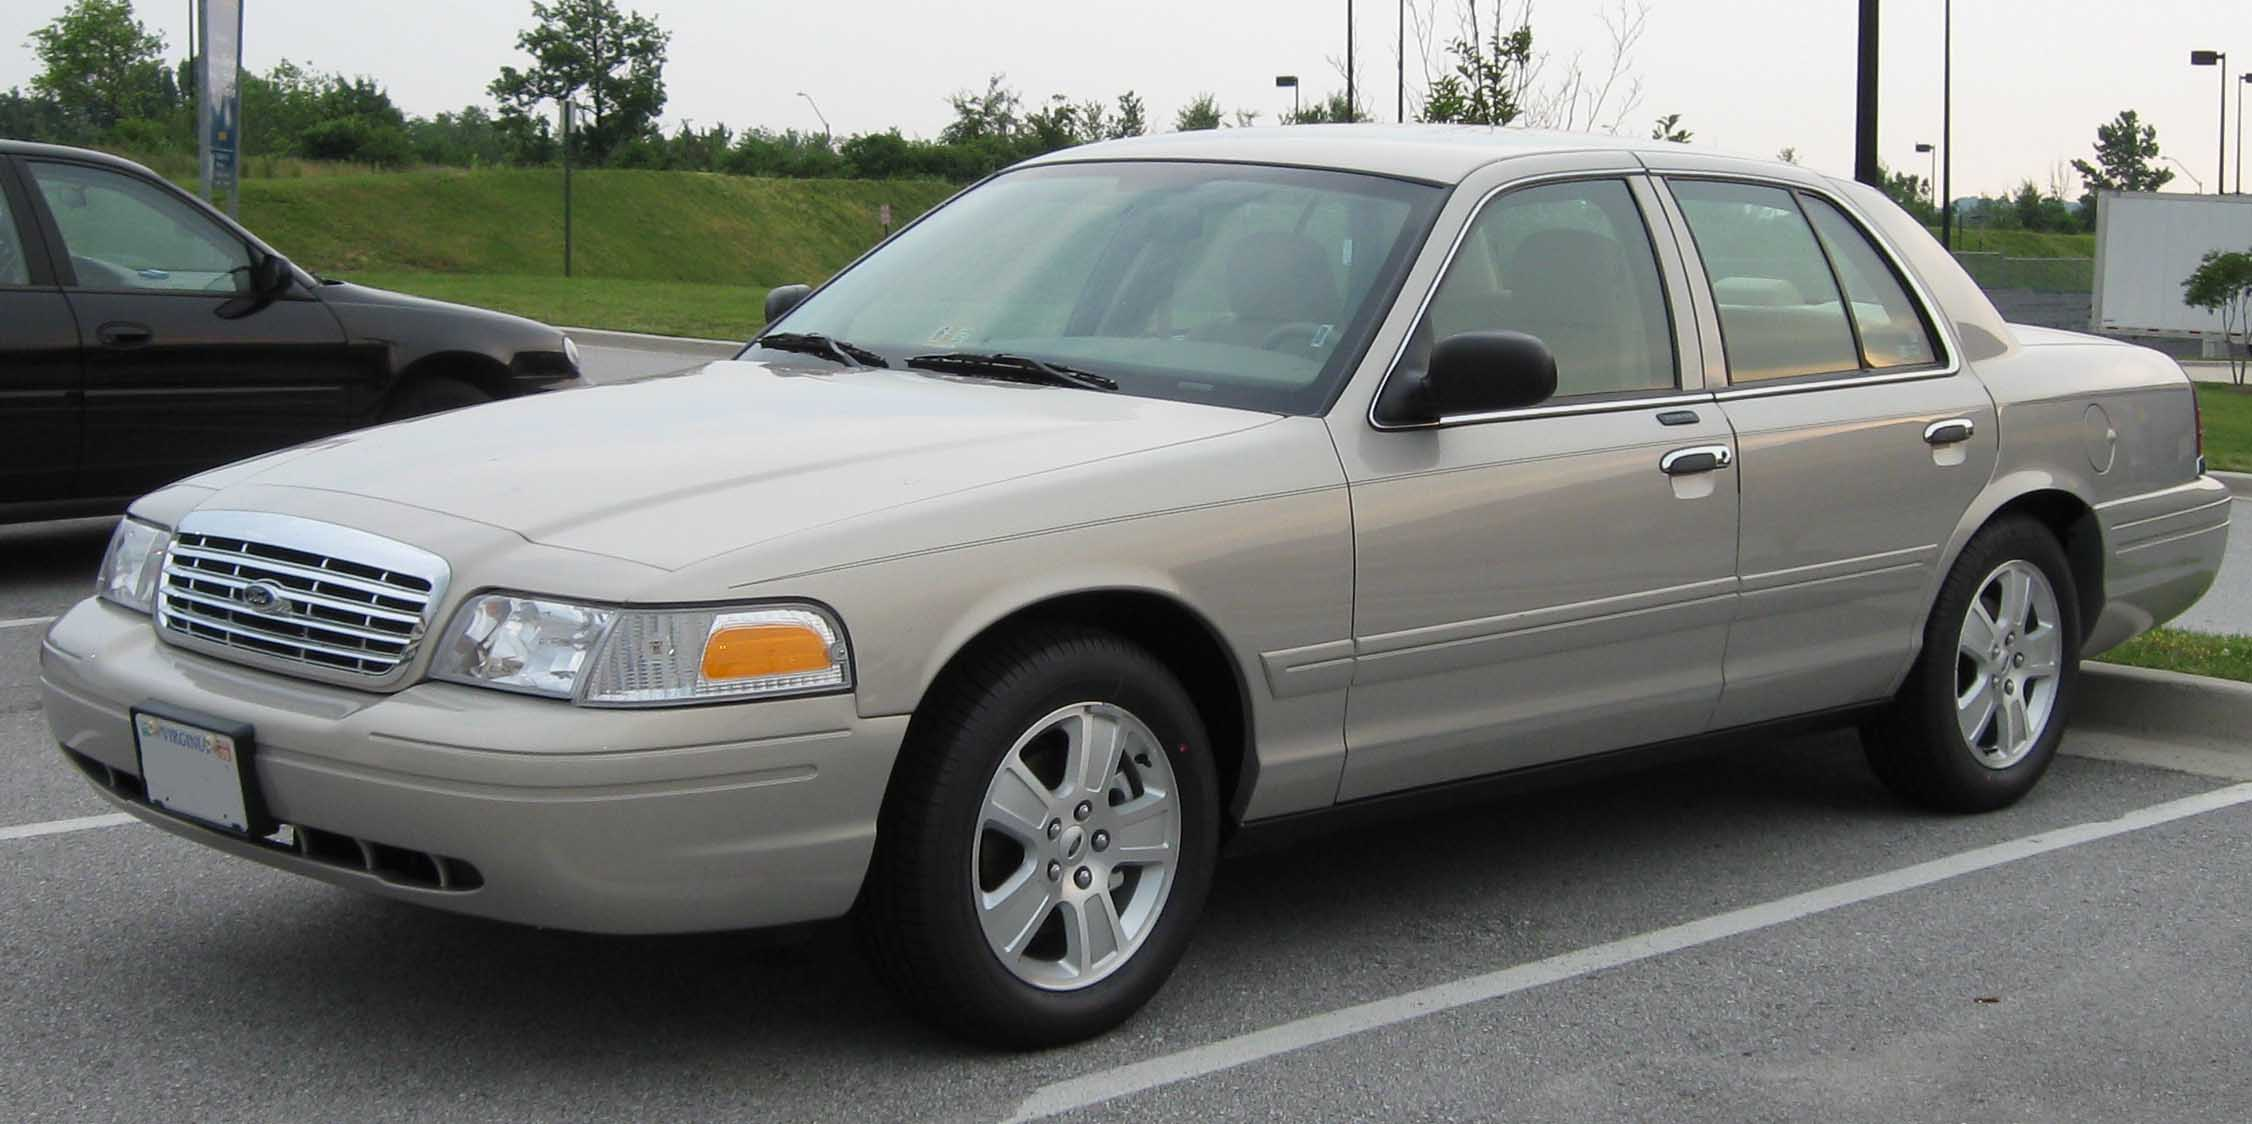 2005 Ford Crown Victoria #2